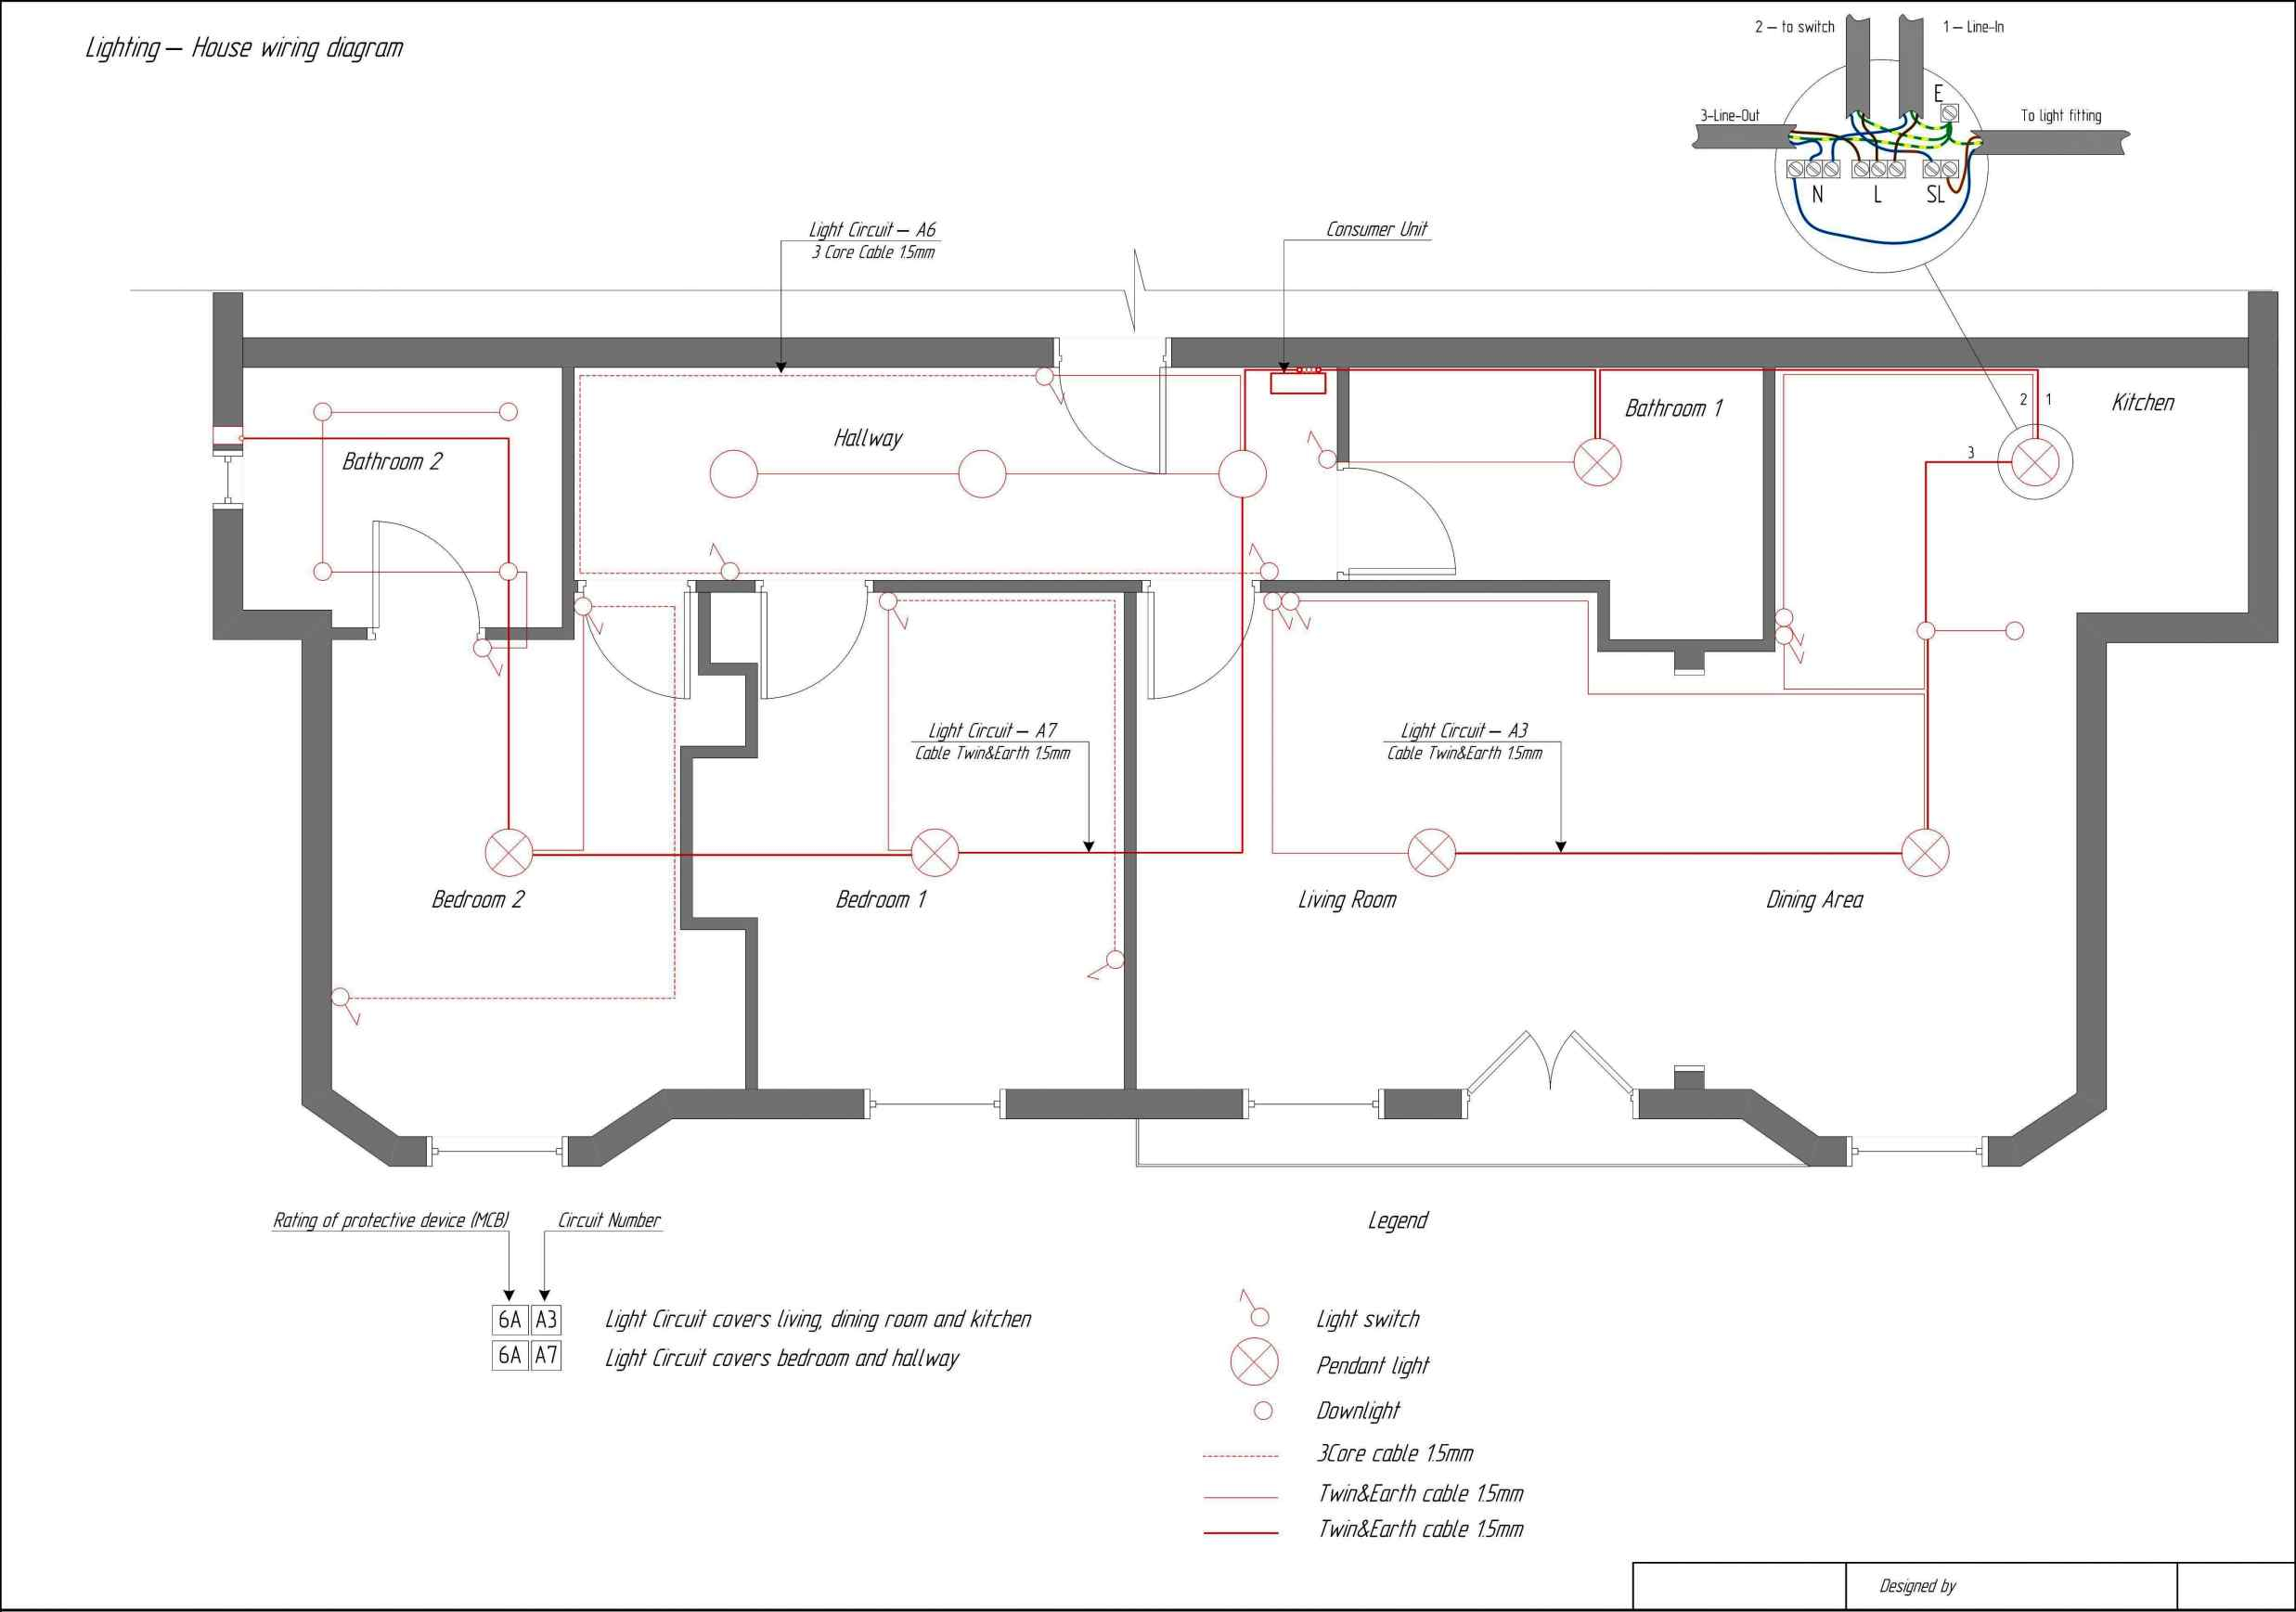 double wide mobile home electrical wiring diagram Download-Mobile Home Electrical Wiring Diagrams Unique Double Wide Mobile Home Electrical Wiring Diagram Collection 1-i